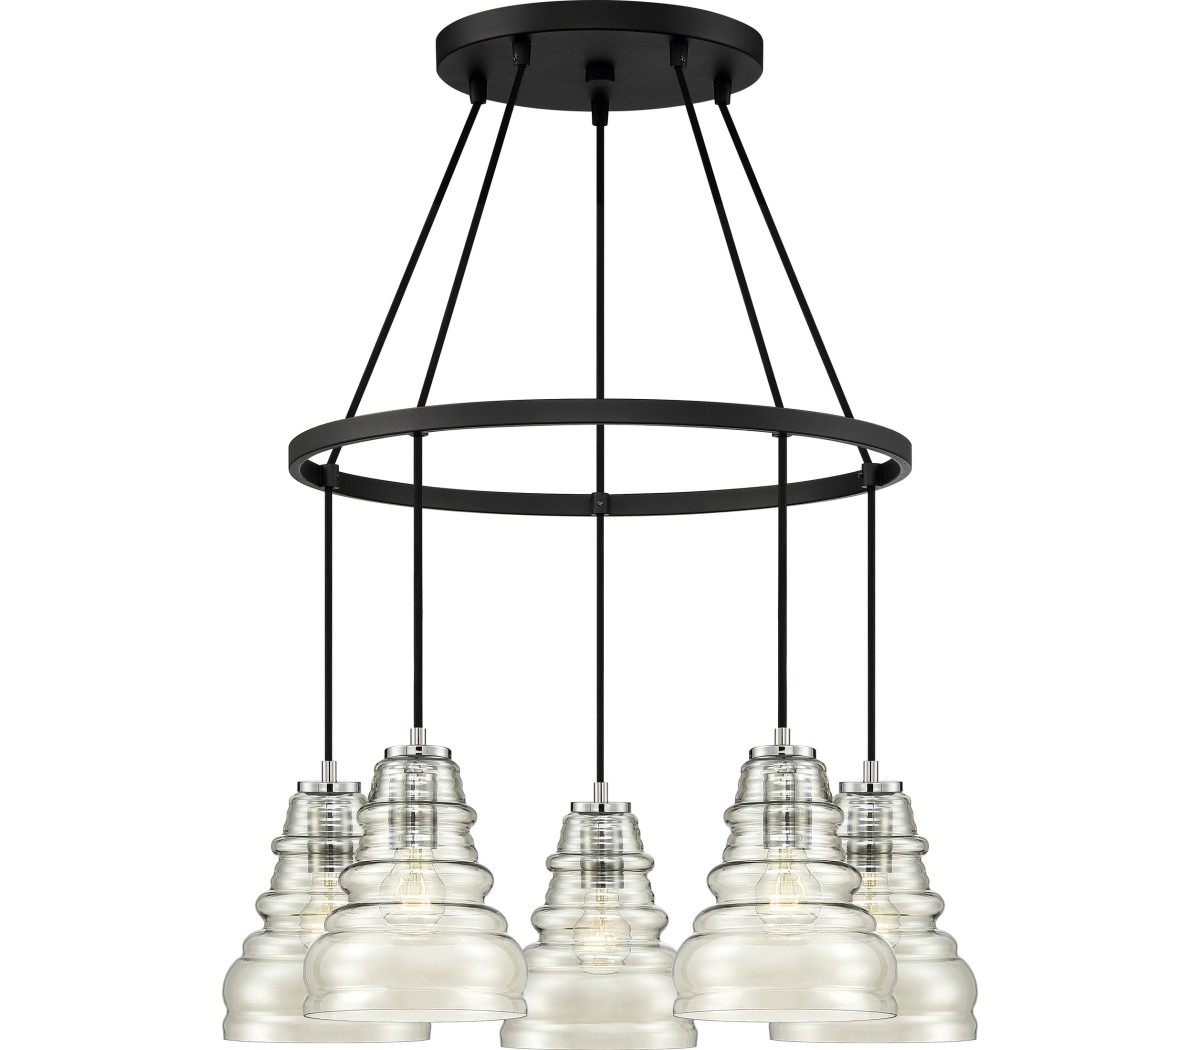 quoizel lighting prophecy quoizel-prophecy-chandelier-1